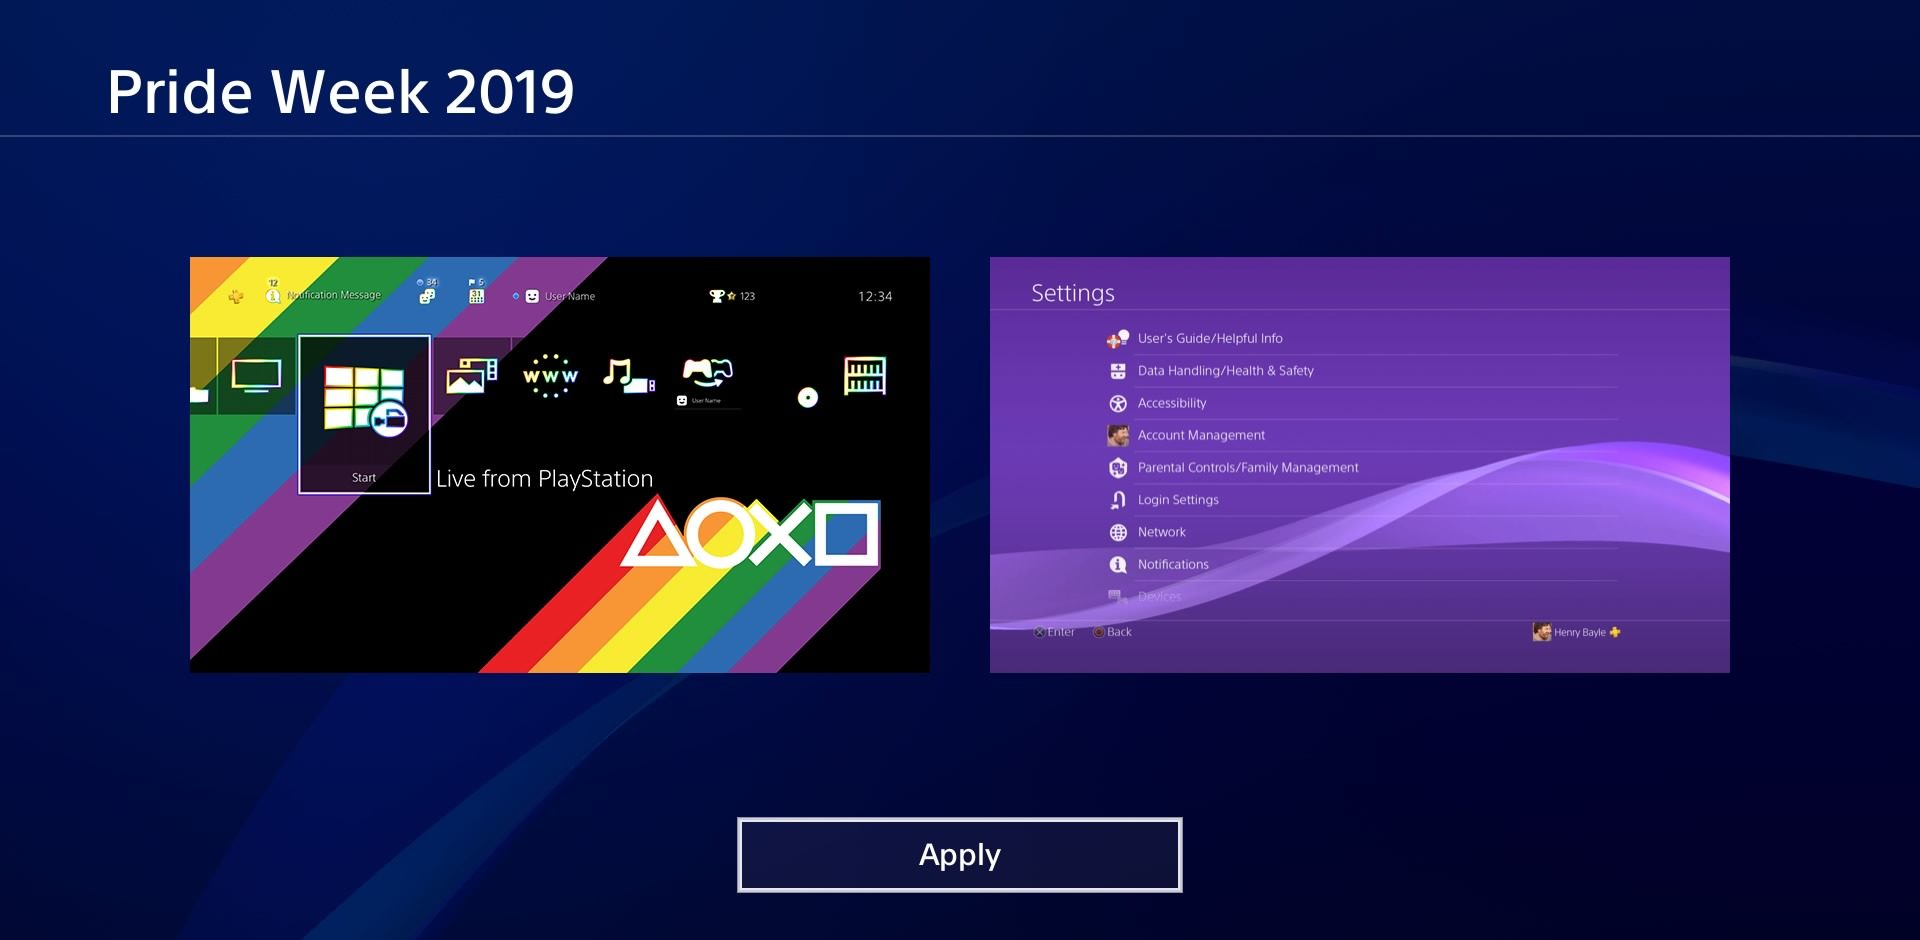 Grab This Free Pride Theme For Your PlayStation 4